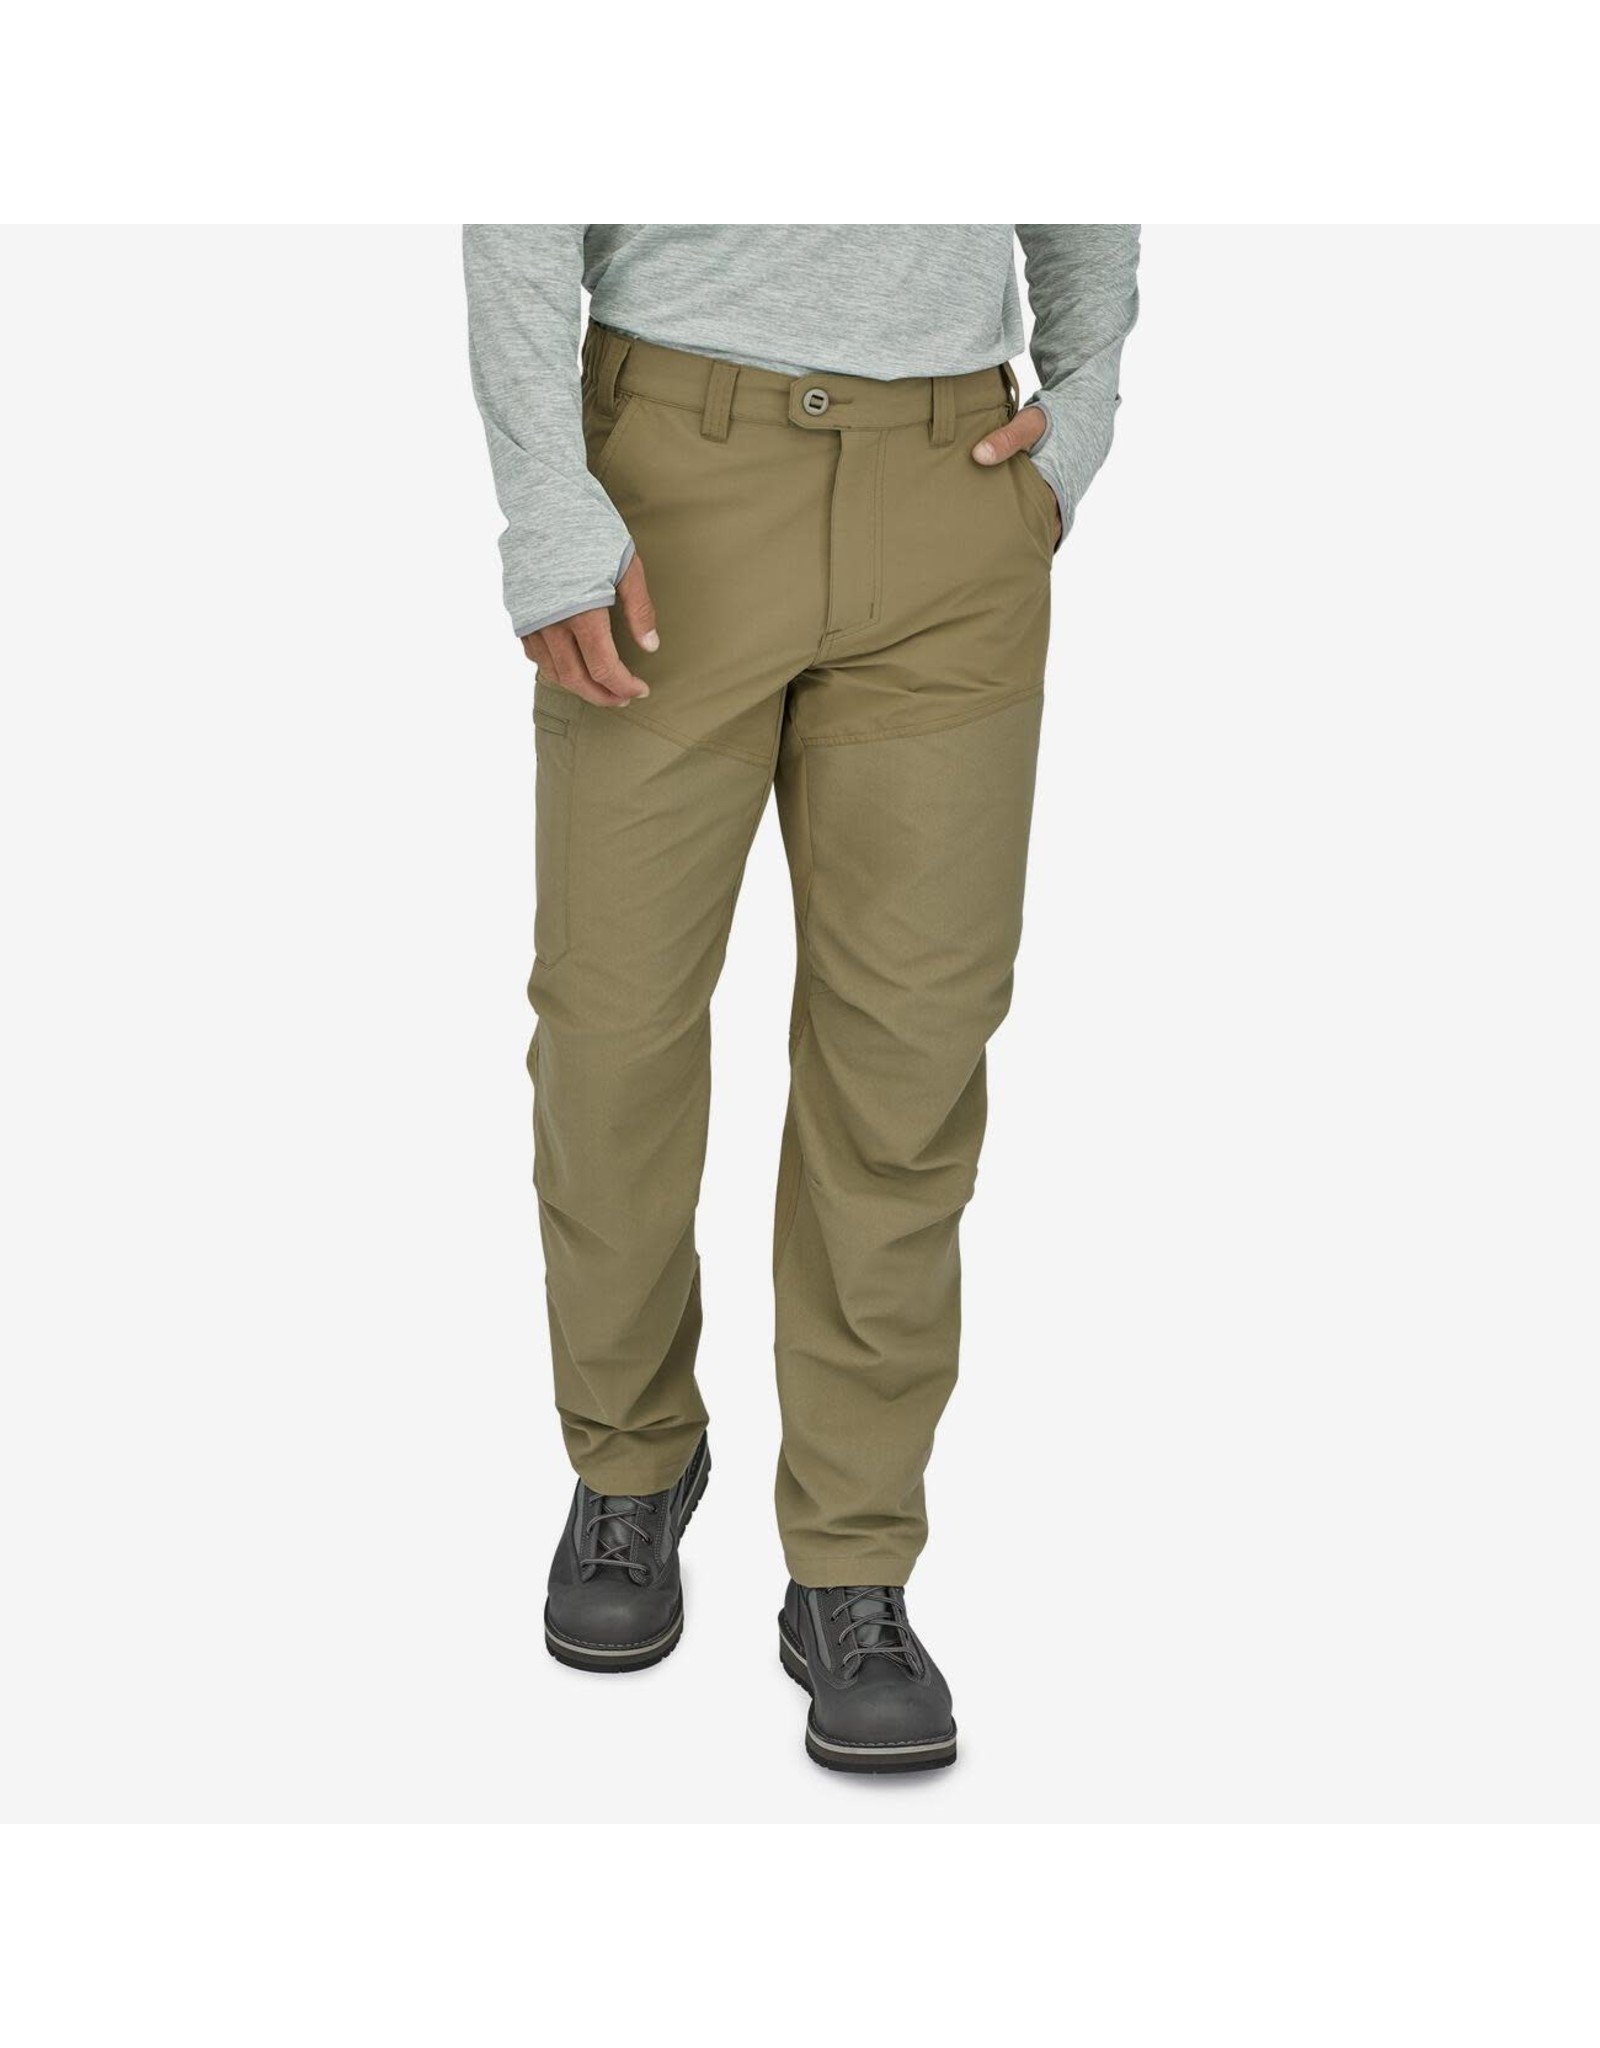 Patagonia Field Pants - Reg